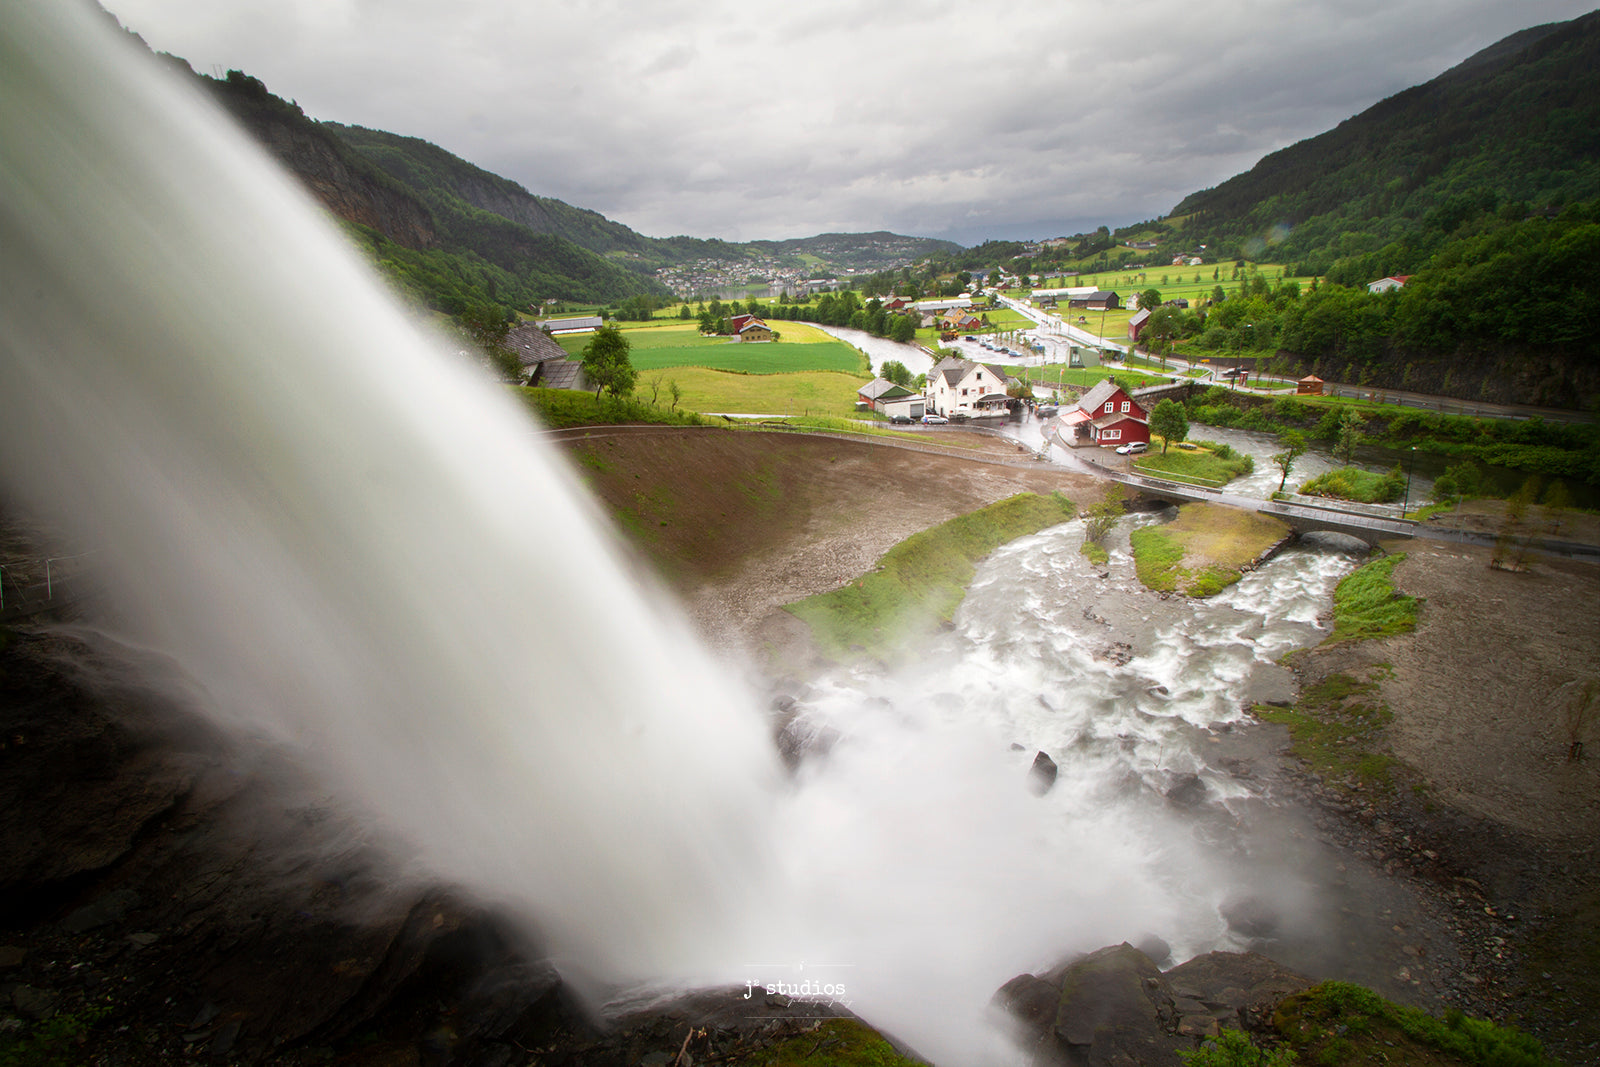 Beautiful picture of water flowing from Steinsdalfossen into the green valley below. Colorful houses in Norway are also featured here. Stunning Landscape Photography by Larry Jang